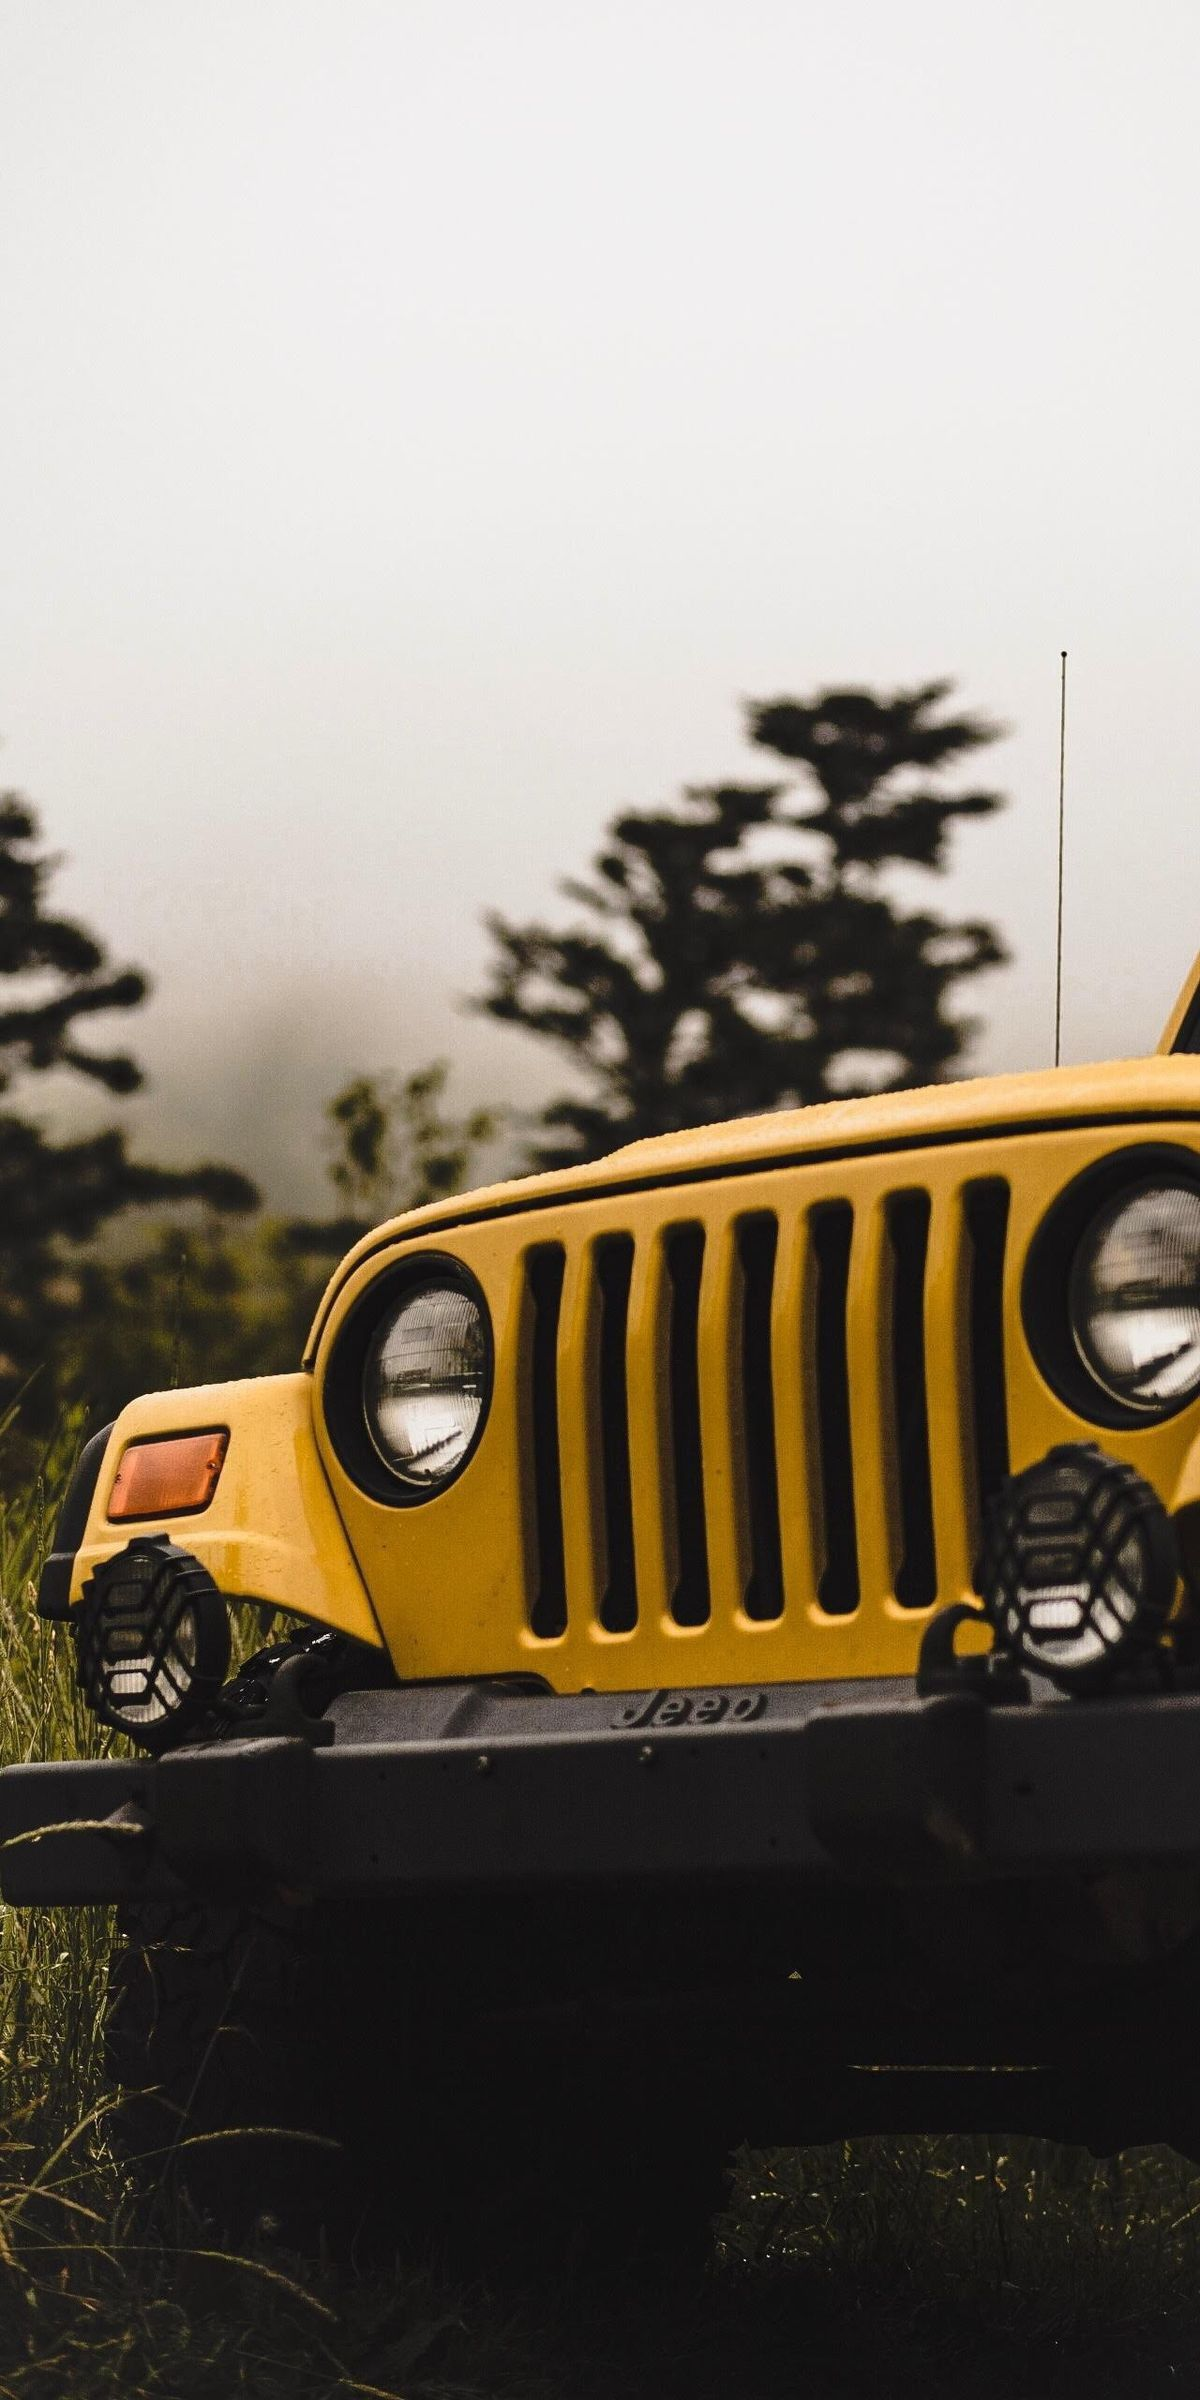 Pin By Zaid Aaryan On 4k Hd Wallpaper Jeep Wallpaper Classic Car Photography Bmw Wallpapers Ideas for full hd jeep wallpaper for